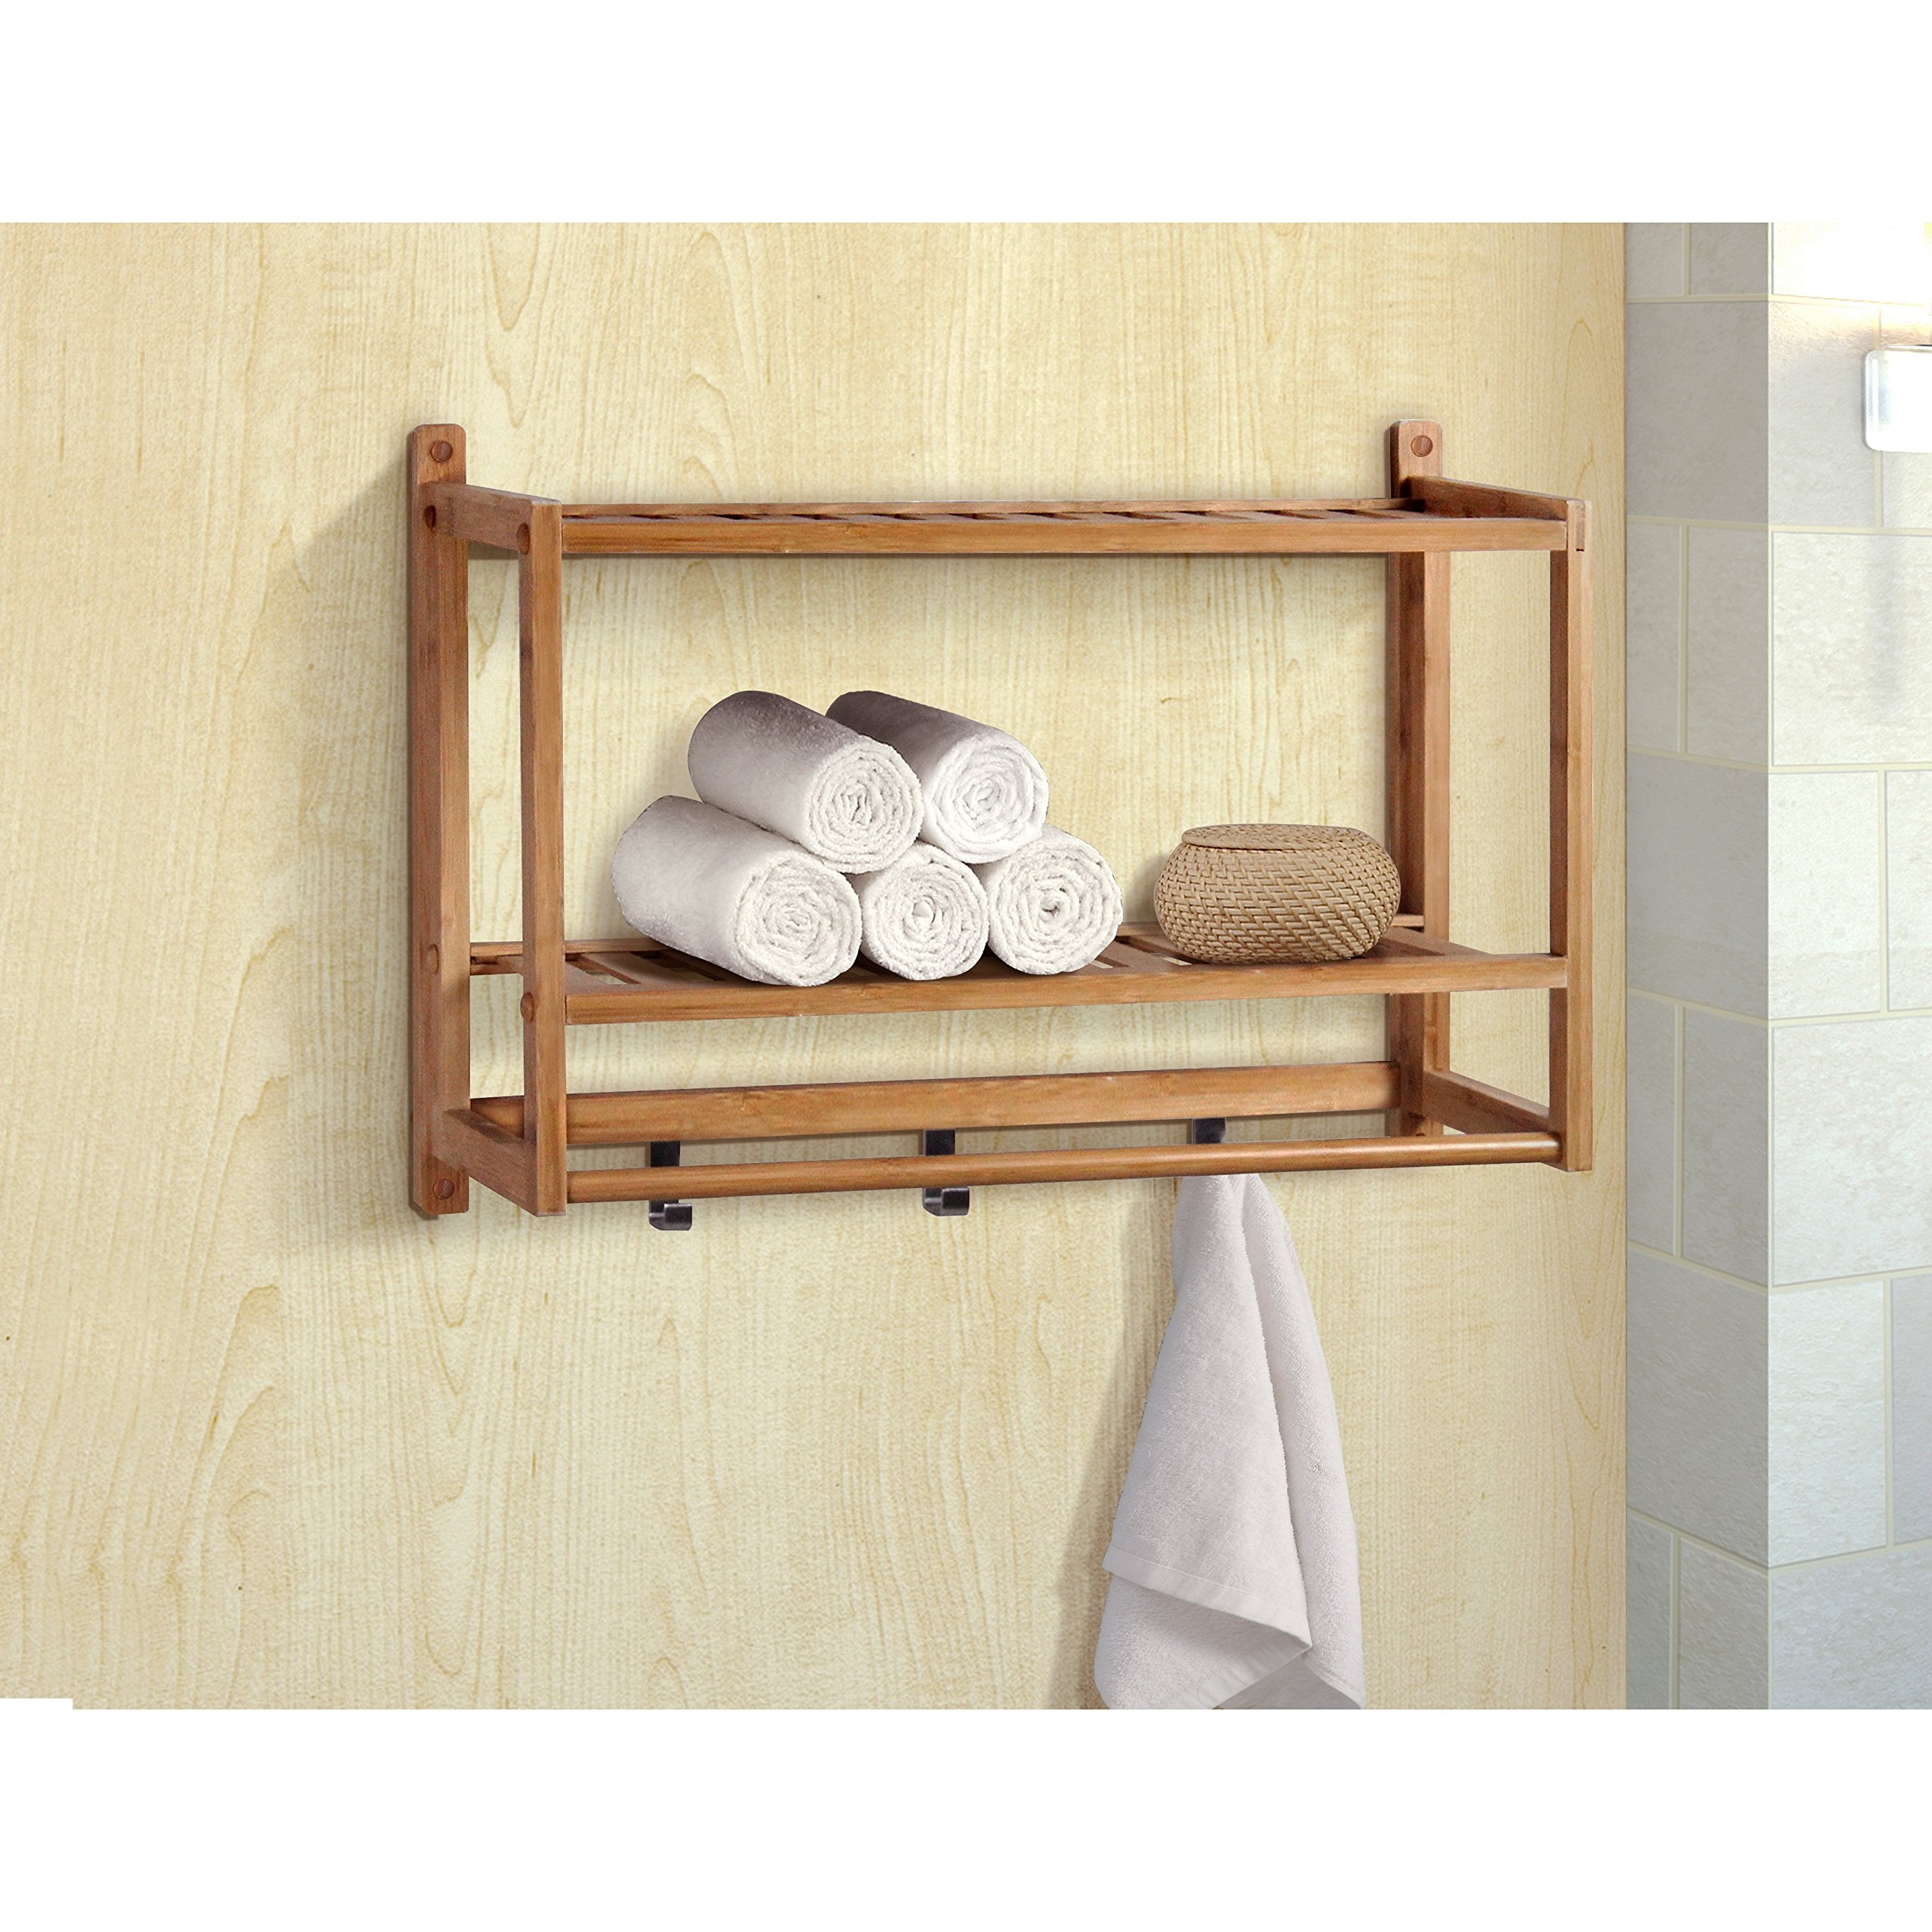 Gallerie Décor 20011-NA Spa Bamboo Wall Organizer, One Size, Natural